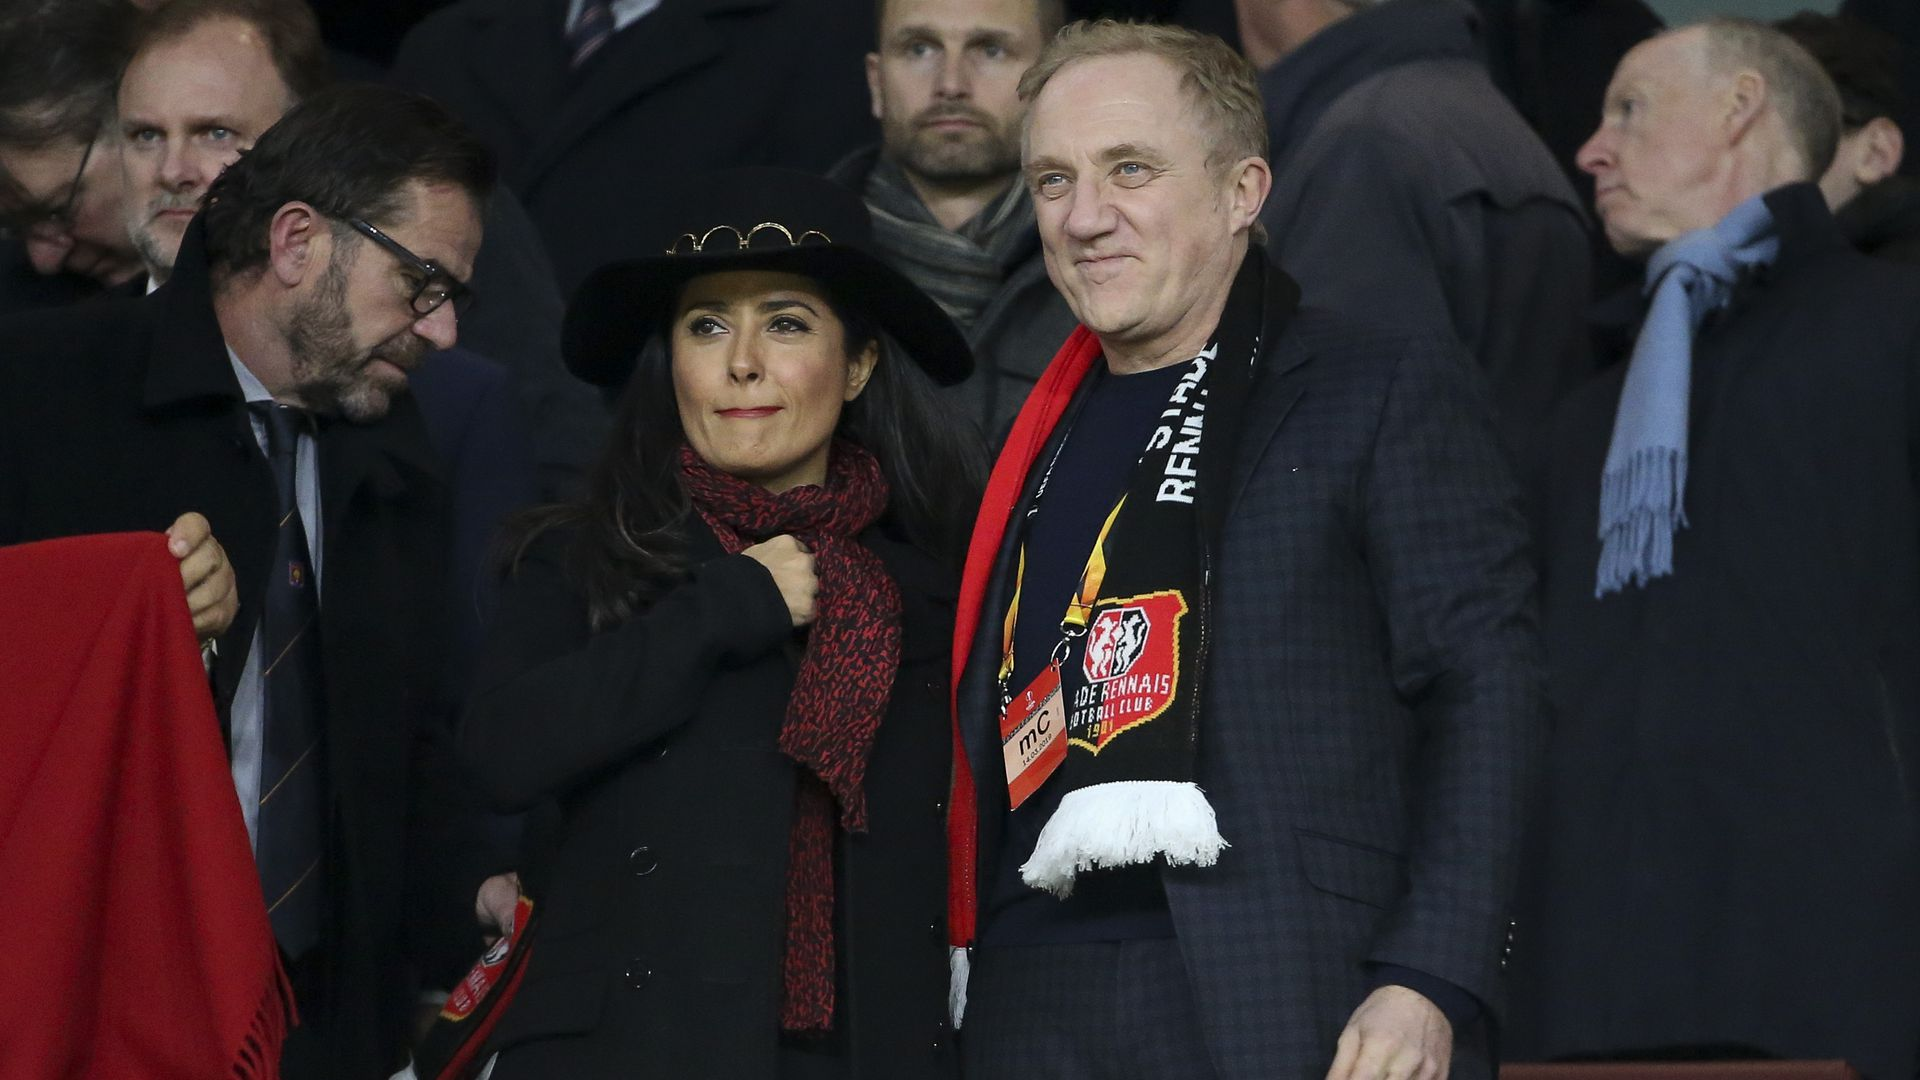 Stade Rennais owner and CEO of Kering Group François-Henri Pinault and his wife, actress Salma Hayek at a soccer match.